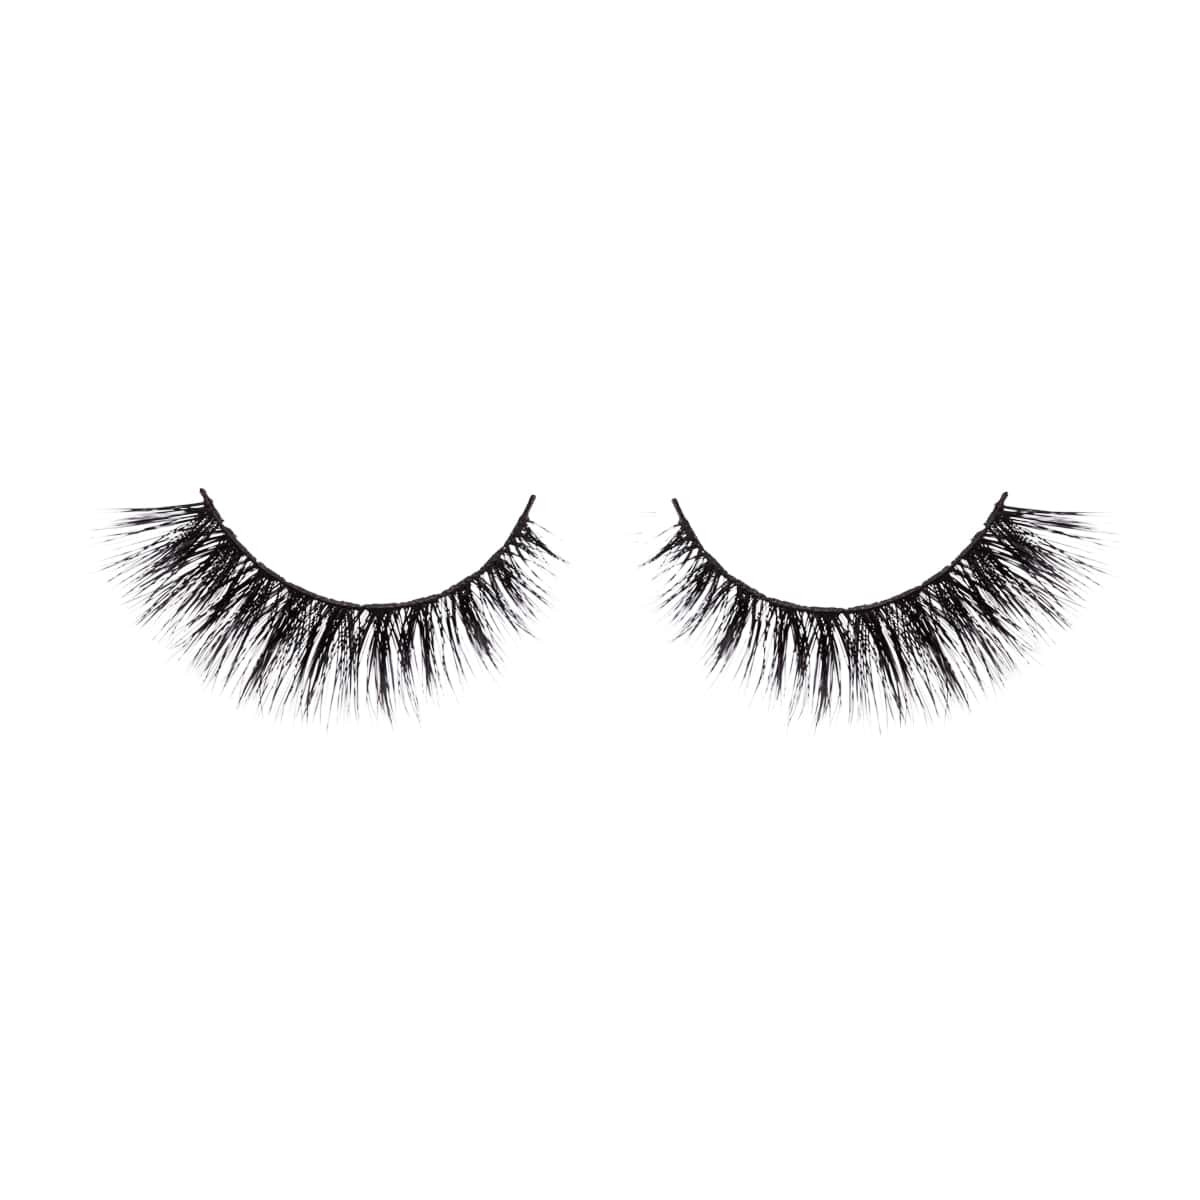 Pro Eyelashes Inshell Pur The Complexion Authority